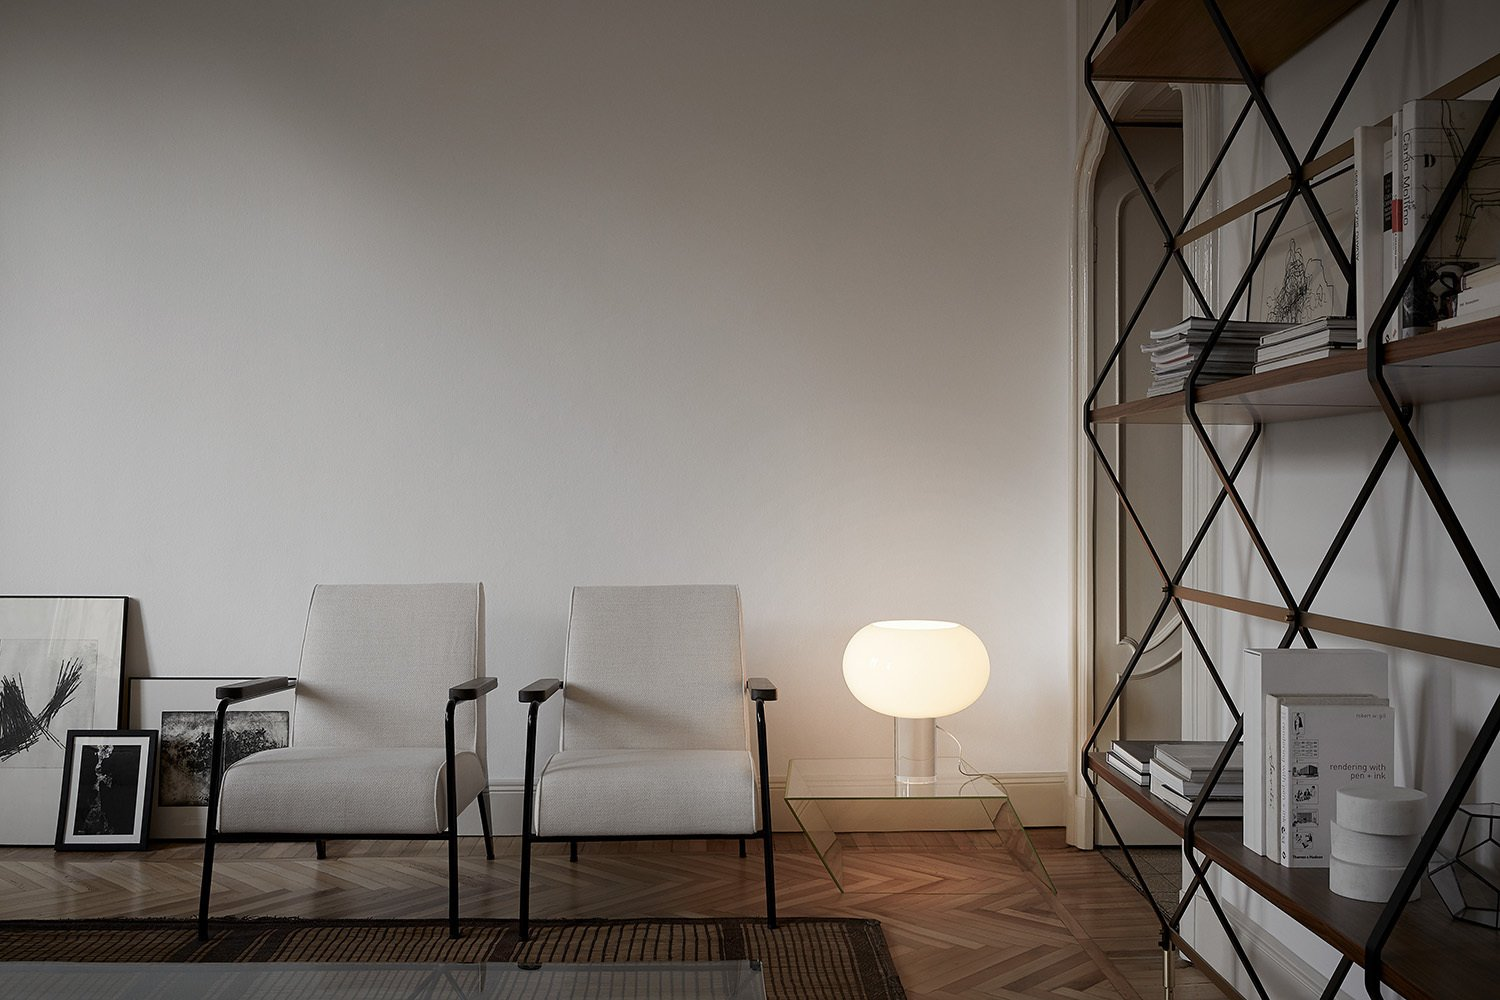 Perfect Rodolfo Dordoni Designed The Buds Table Lamp, Which Is Being Released This  Year By Foscarini